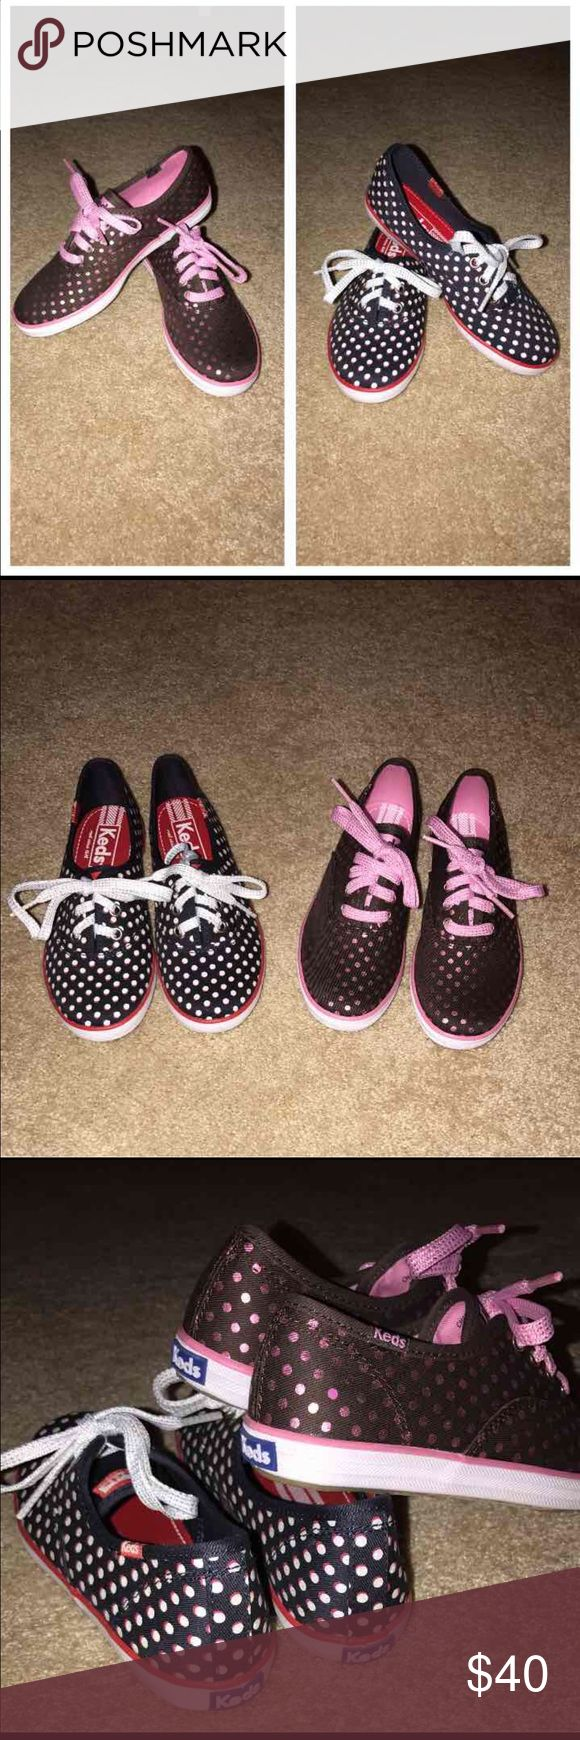 Keds Champion Dots Girls Youth Sneaker Keds Champion Dots Girls Youth Sneaker  Brown/Pink Polka Dot Sz 1 Navy/White Red Polka Sz 1  Original $35.00 Each Keds Shoes Sneakers